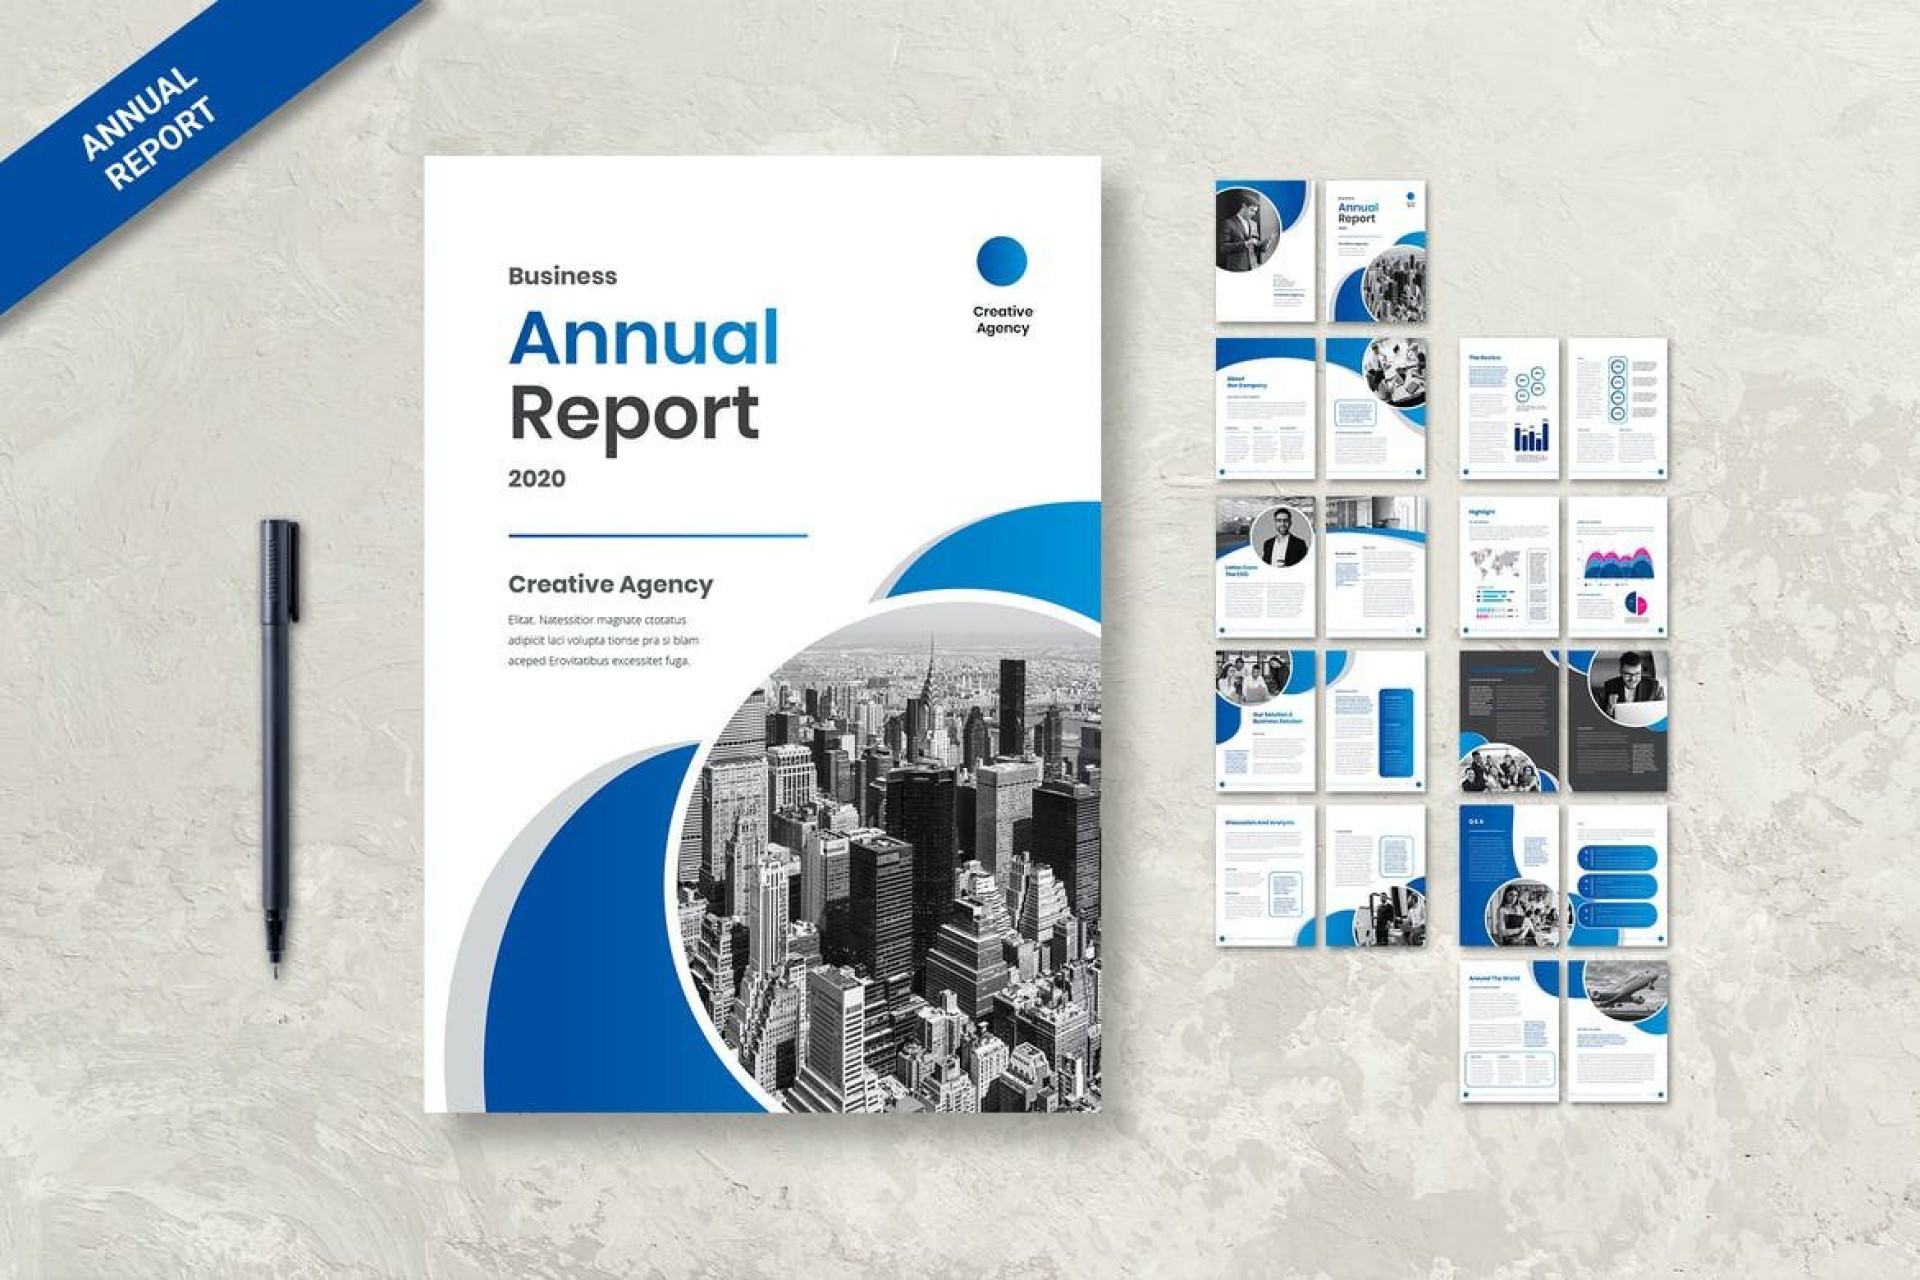 009 Wonderful Free Download Annual Report Cover Design Template High Resolution  In Word Page1920